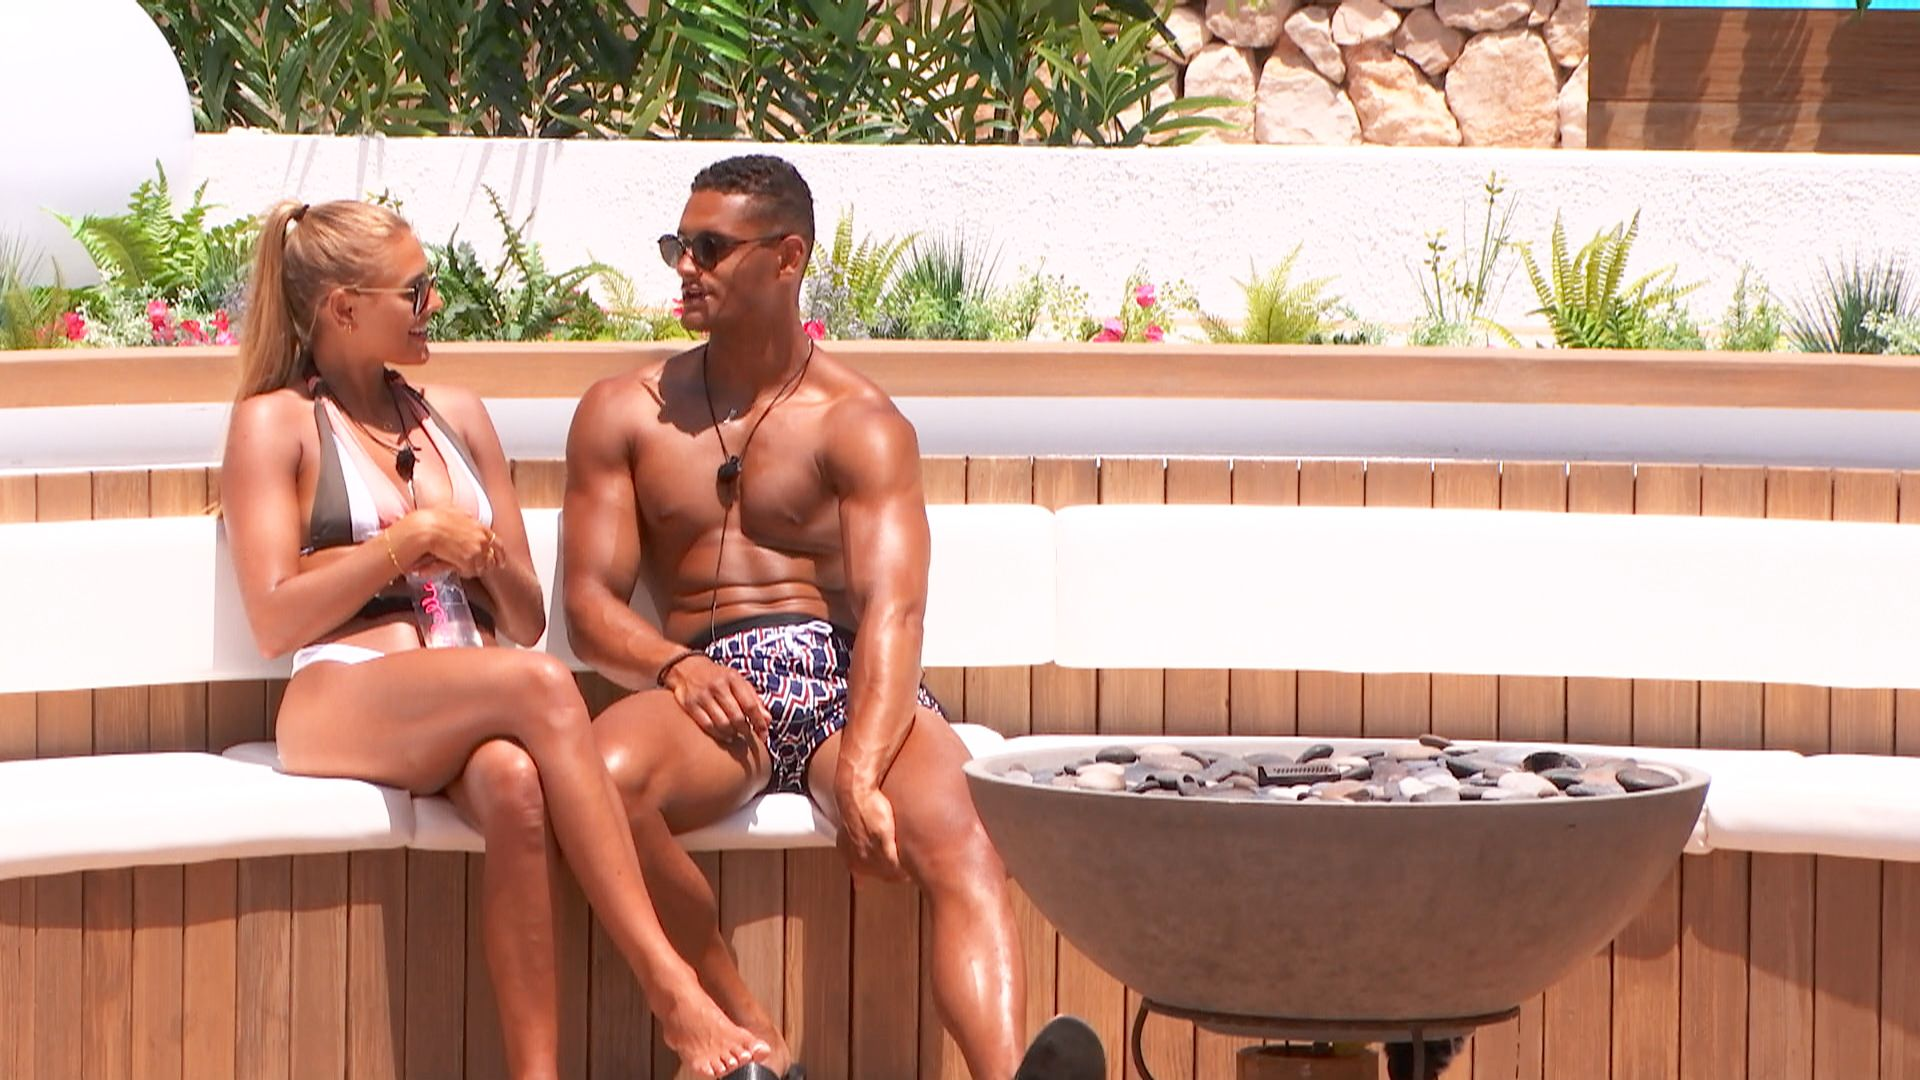 Here's why Love Island viewers think Danny knew Arabella before entering the villa